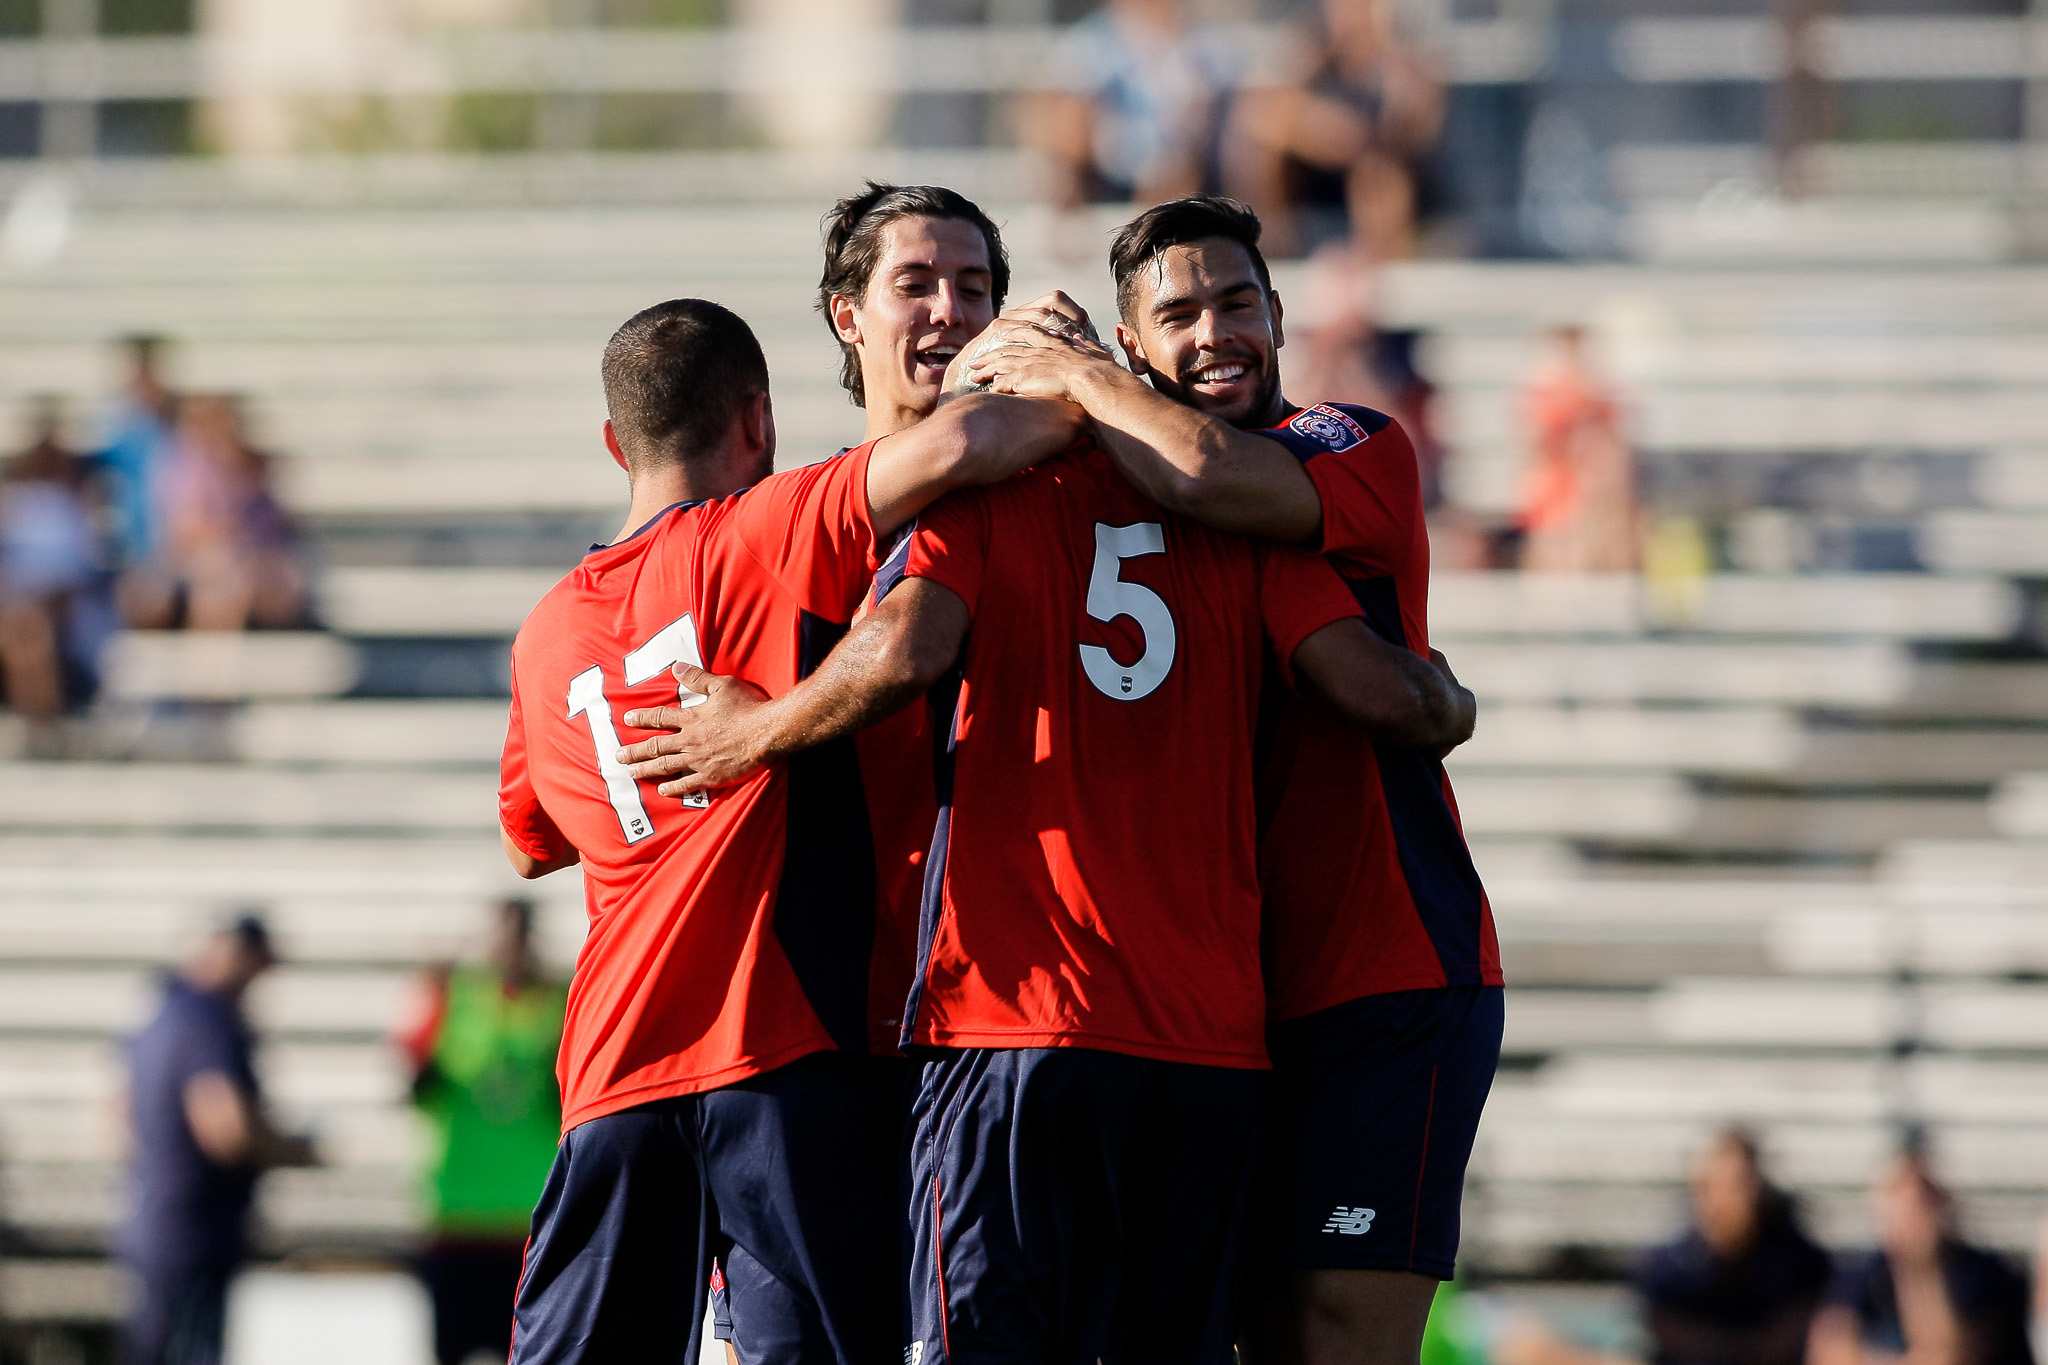 Boston City FC players mob Pedro Silva, #5, after he scores to even the game at 1-1. (c) Burt Granofsky